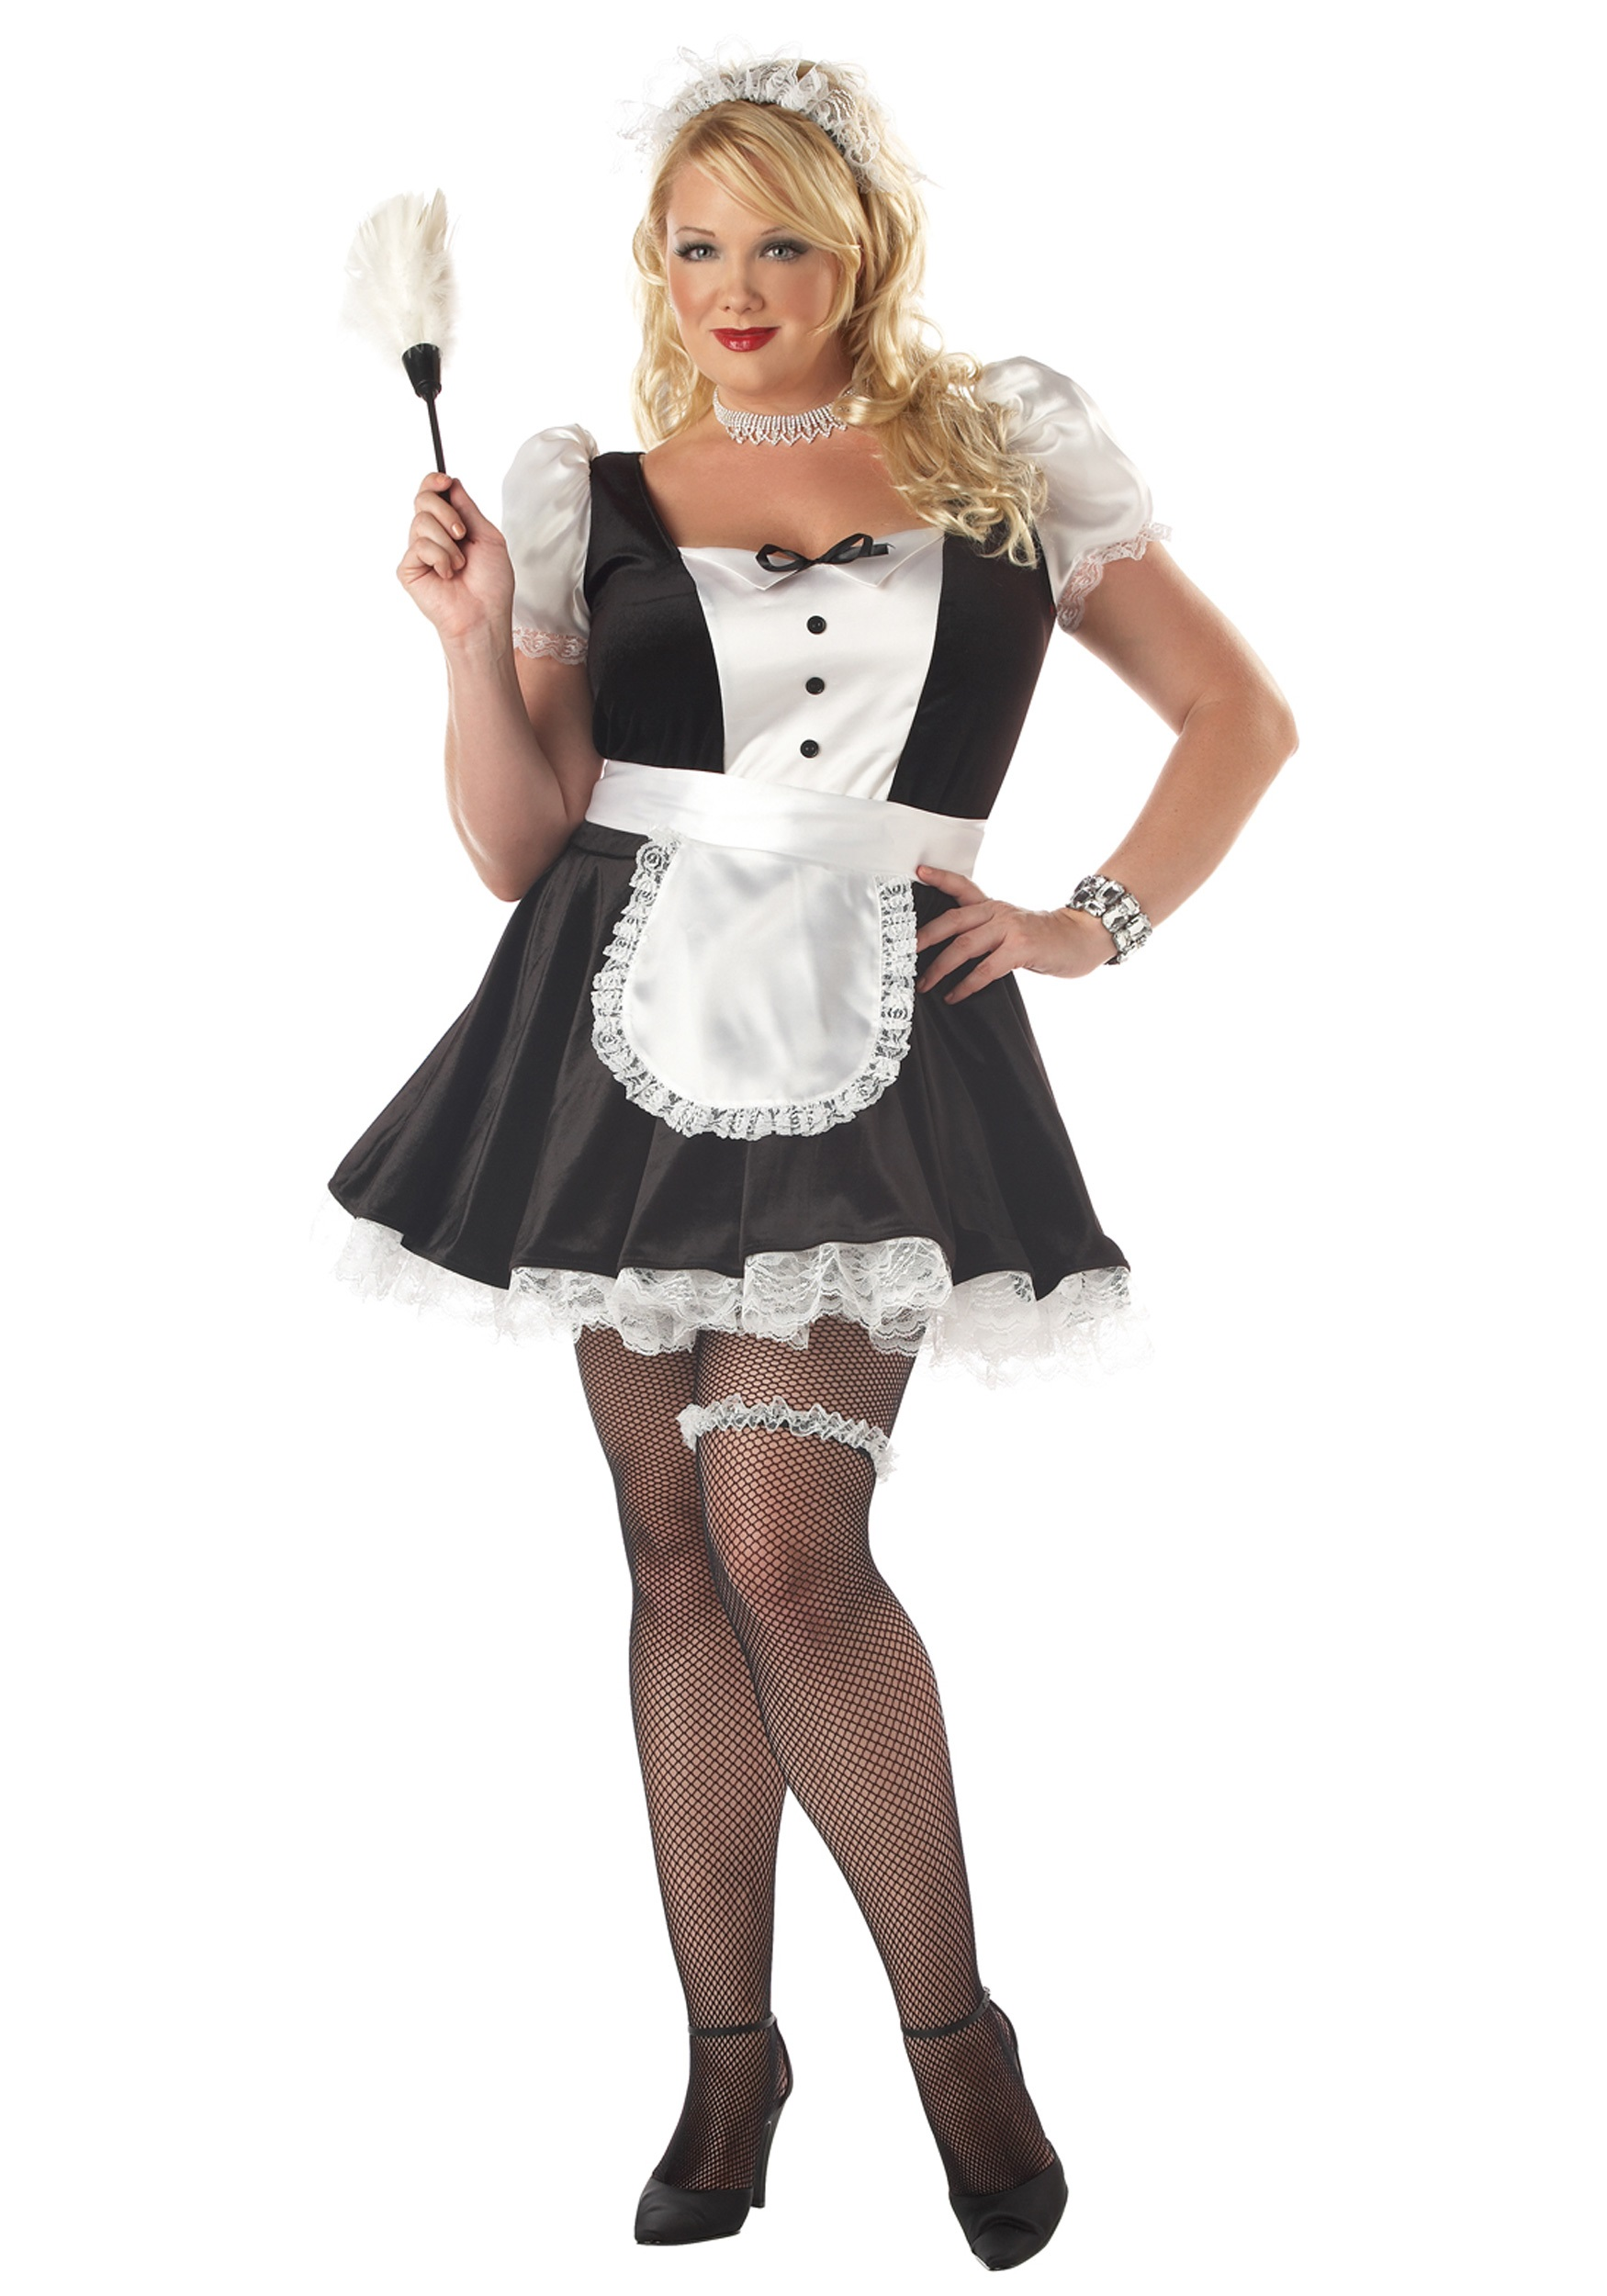 Plus Size Fiona the French Maid Costume  sc 1 st  Halloween Costumes & Plus Size Fiona the French Maid Costume - Halloween Costumes